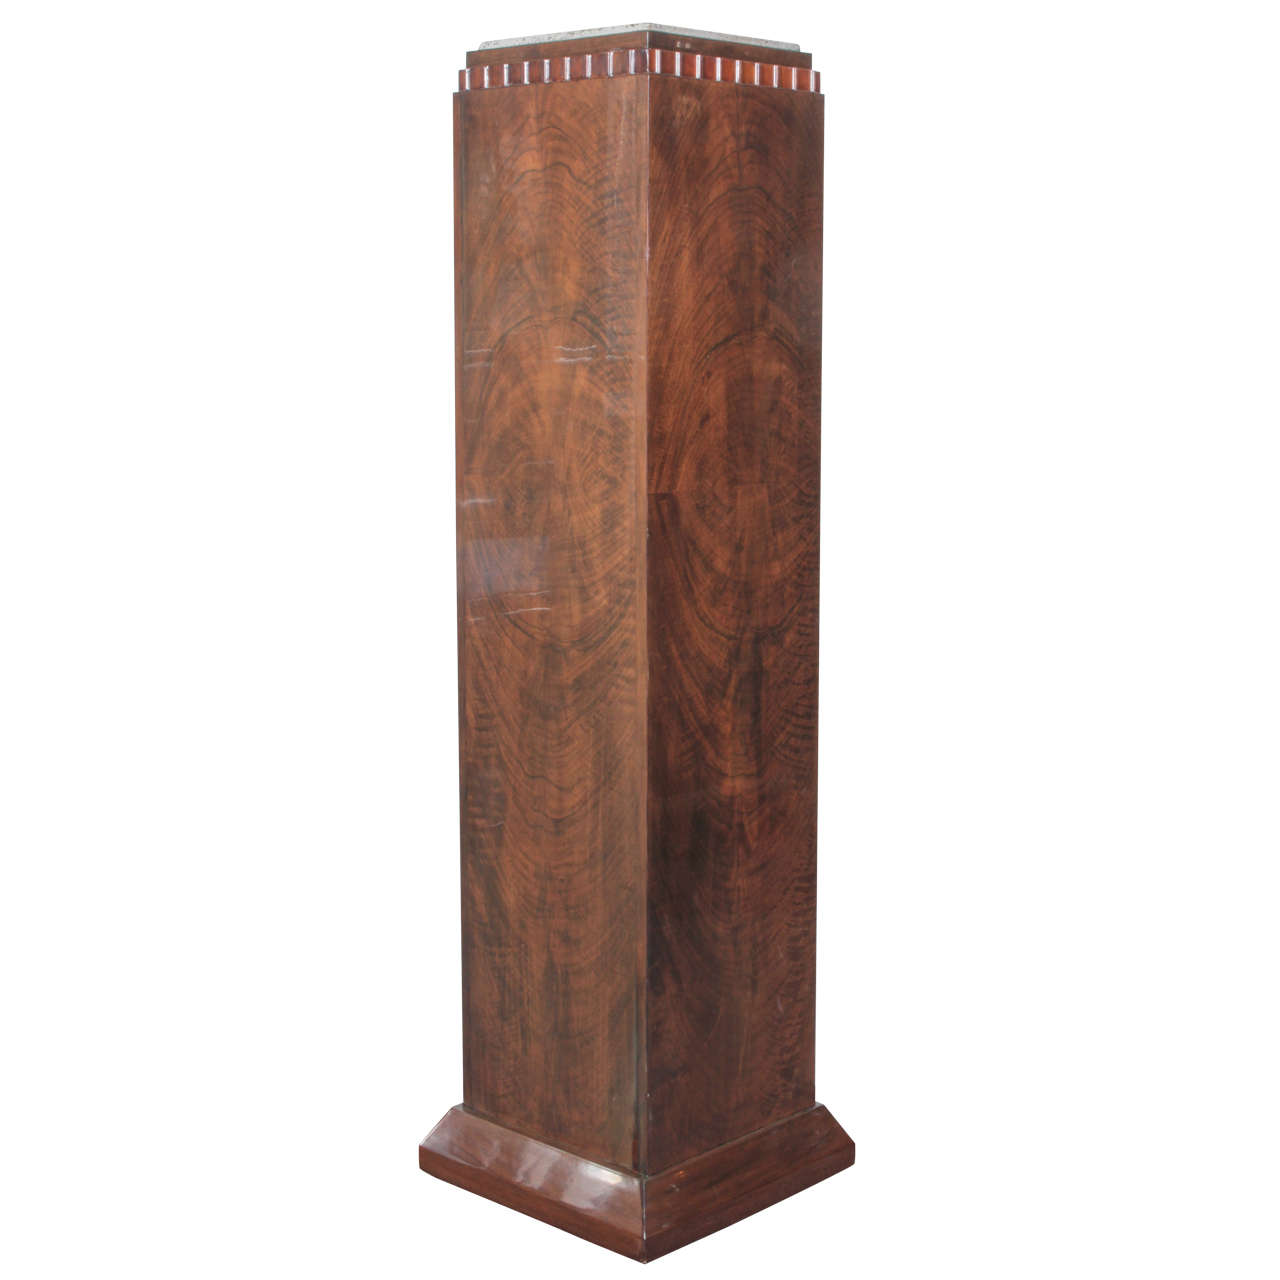 French art deco tall pedestal column attributed to dim at 1stdibs - Statue deco interieure ...